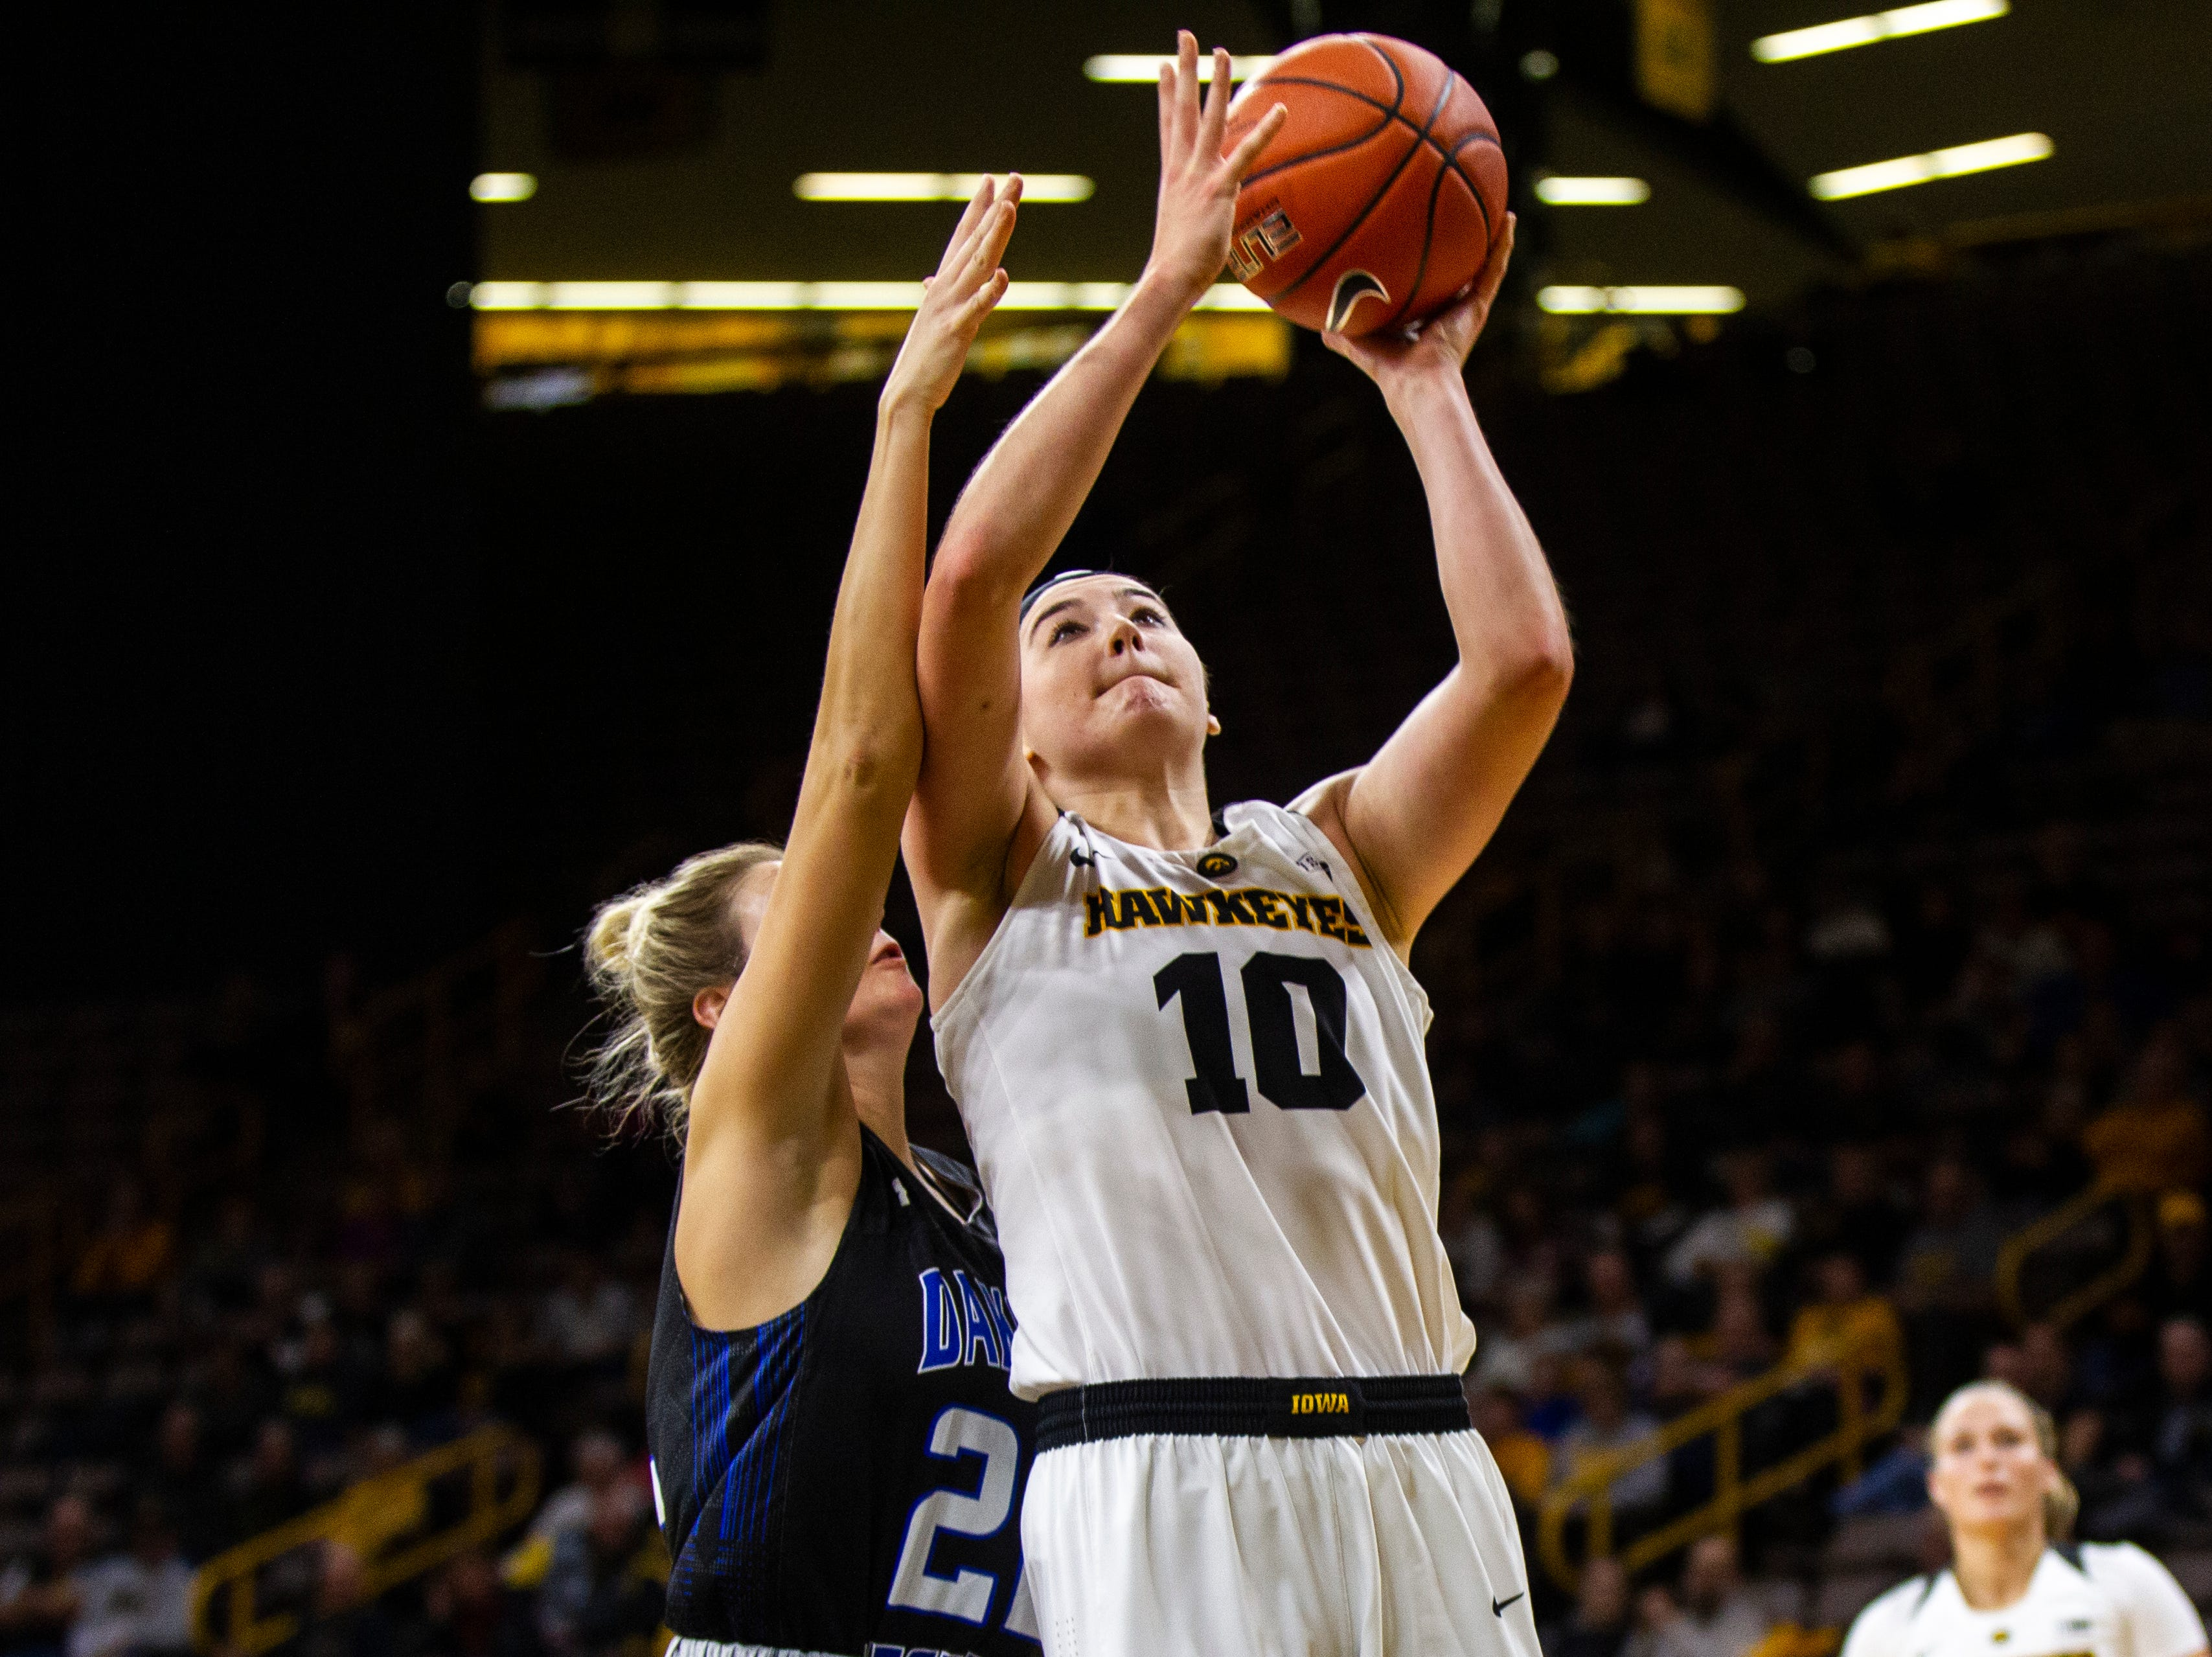 Iowa forward Megan Gustafson (10) takes a shot during a women's basketball exhibition basketball game on Tuesday, Nov. 6, 2018, at Carver-Hawkeye Arena in Iowa City.